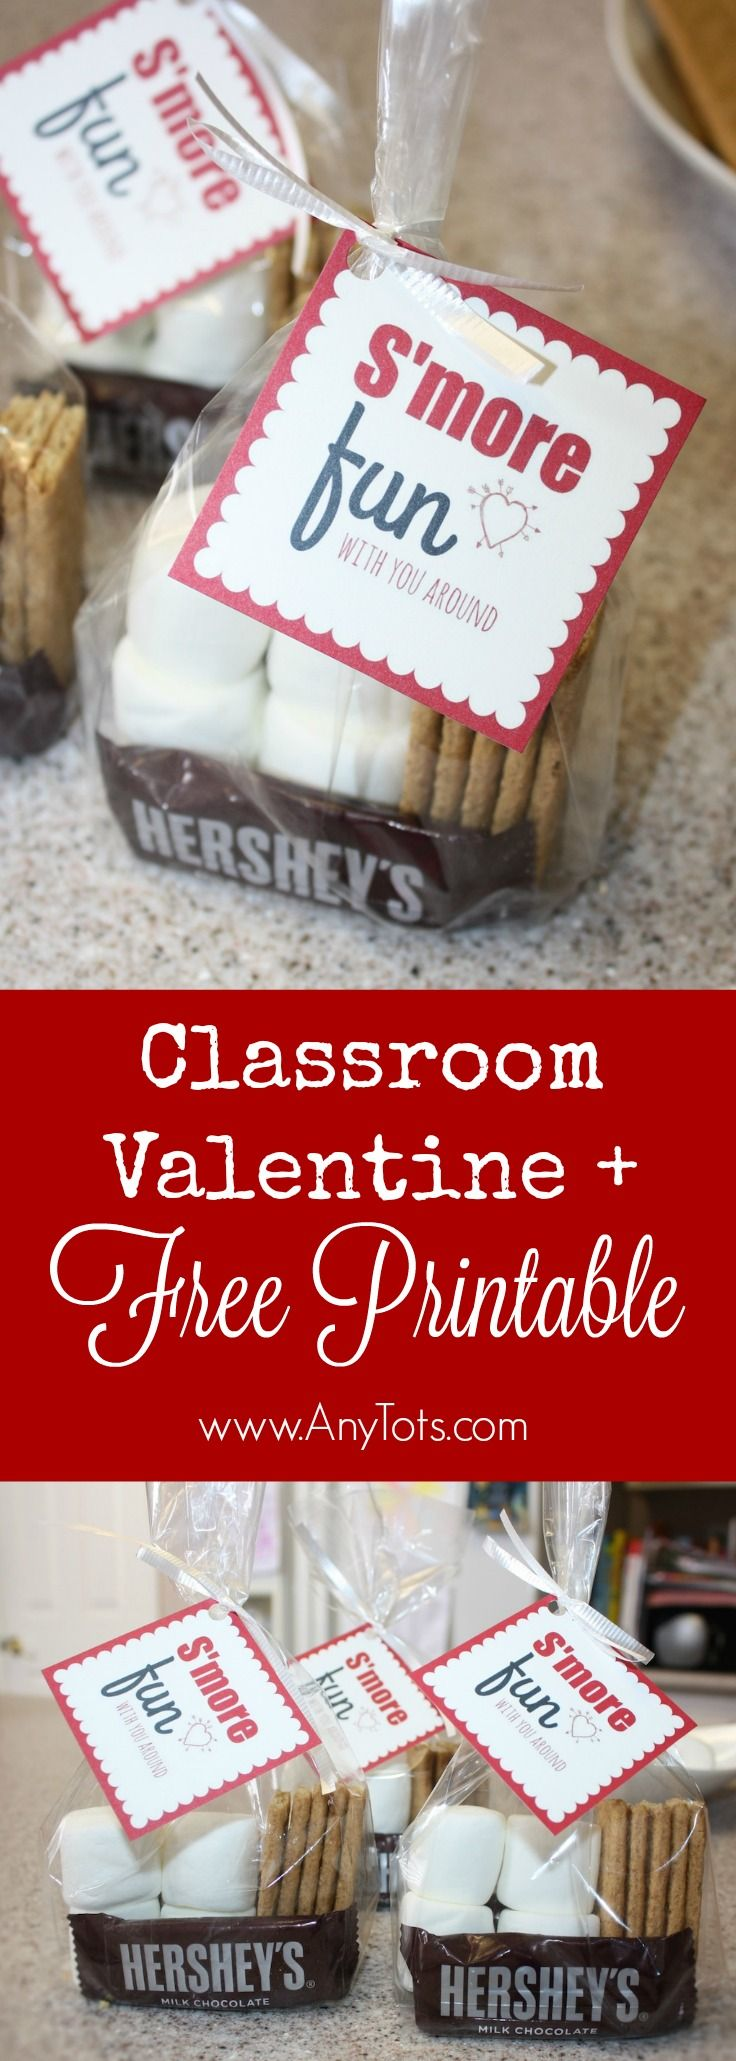 Classroom Valentine Idea with Free Printable Valentine Gift Tag. Which kid wouldn't like S'mores as a Valentine gift. Check it out on the blog, www.anytots.com Don't forget to print the Valentine Free printable to go with it.